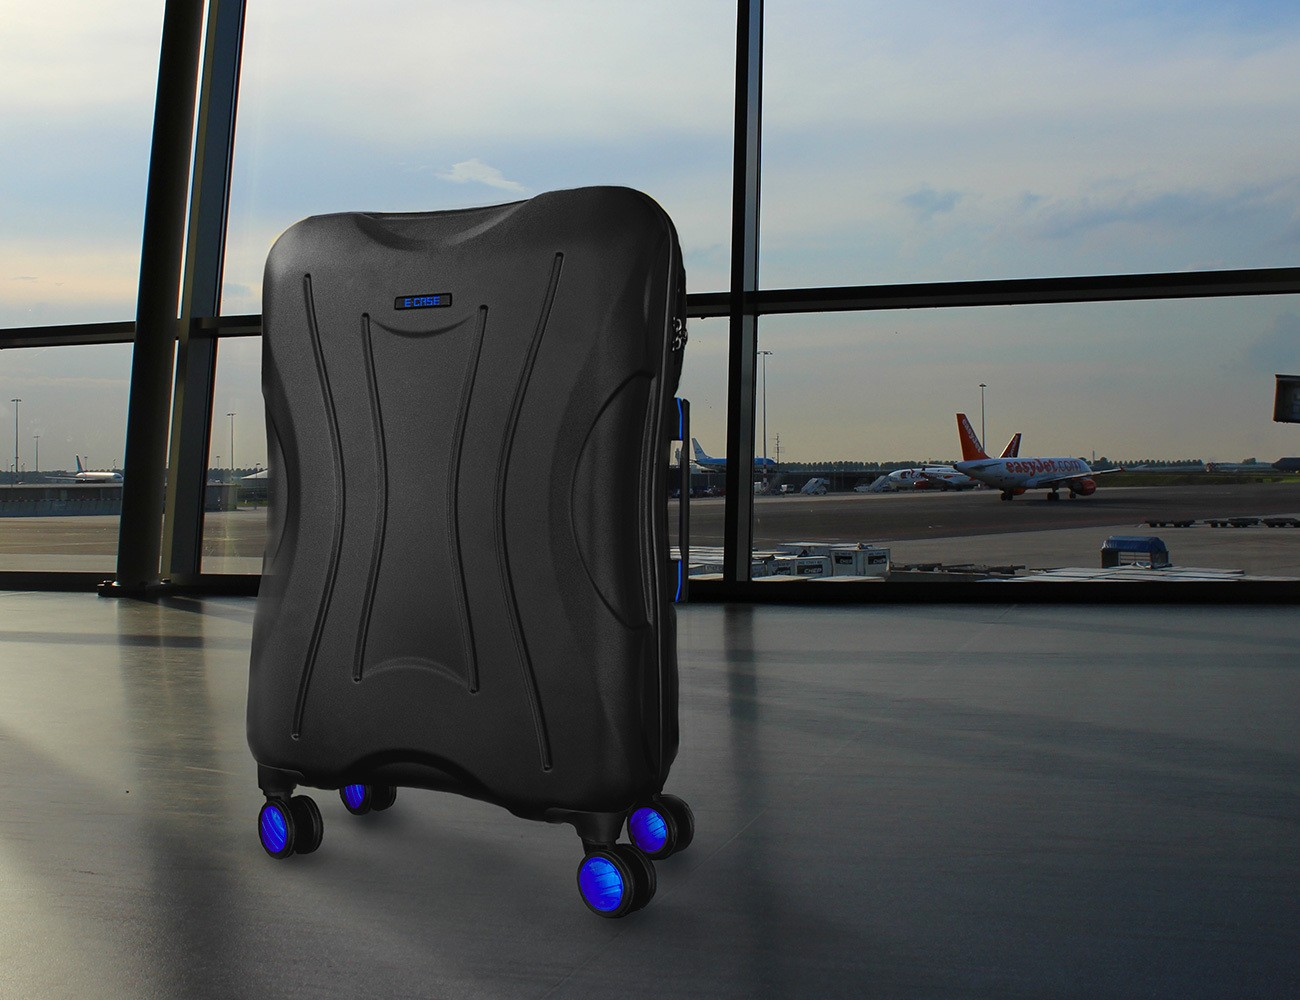 E-CASE+Smart+Check-In+Luggage